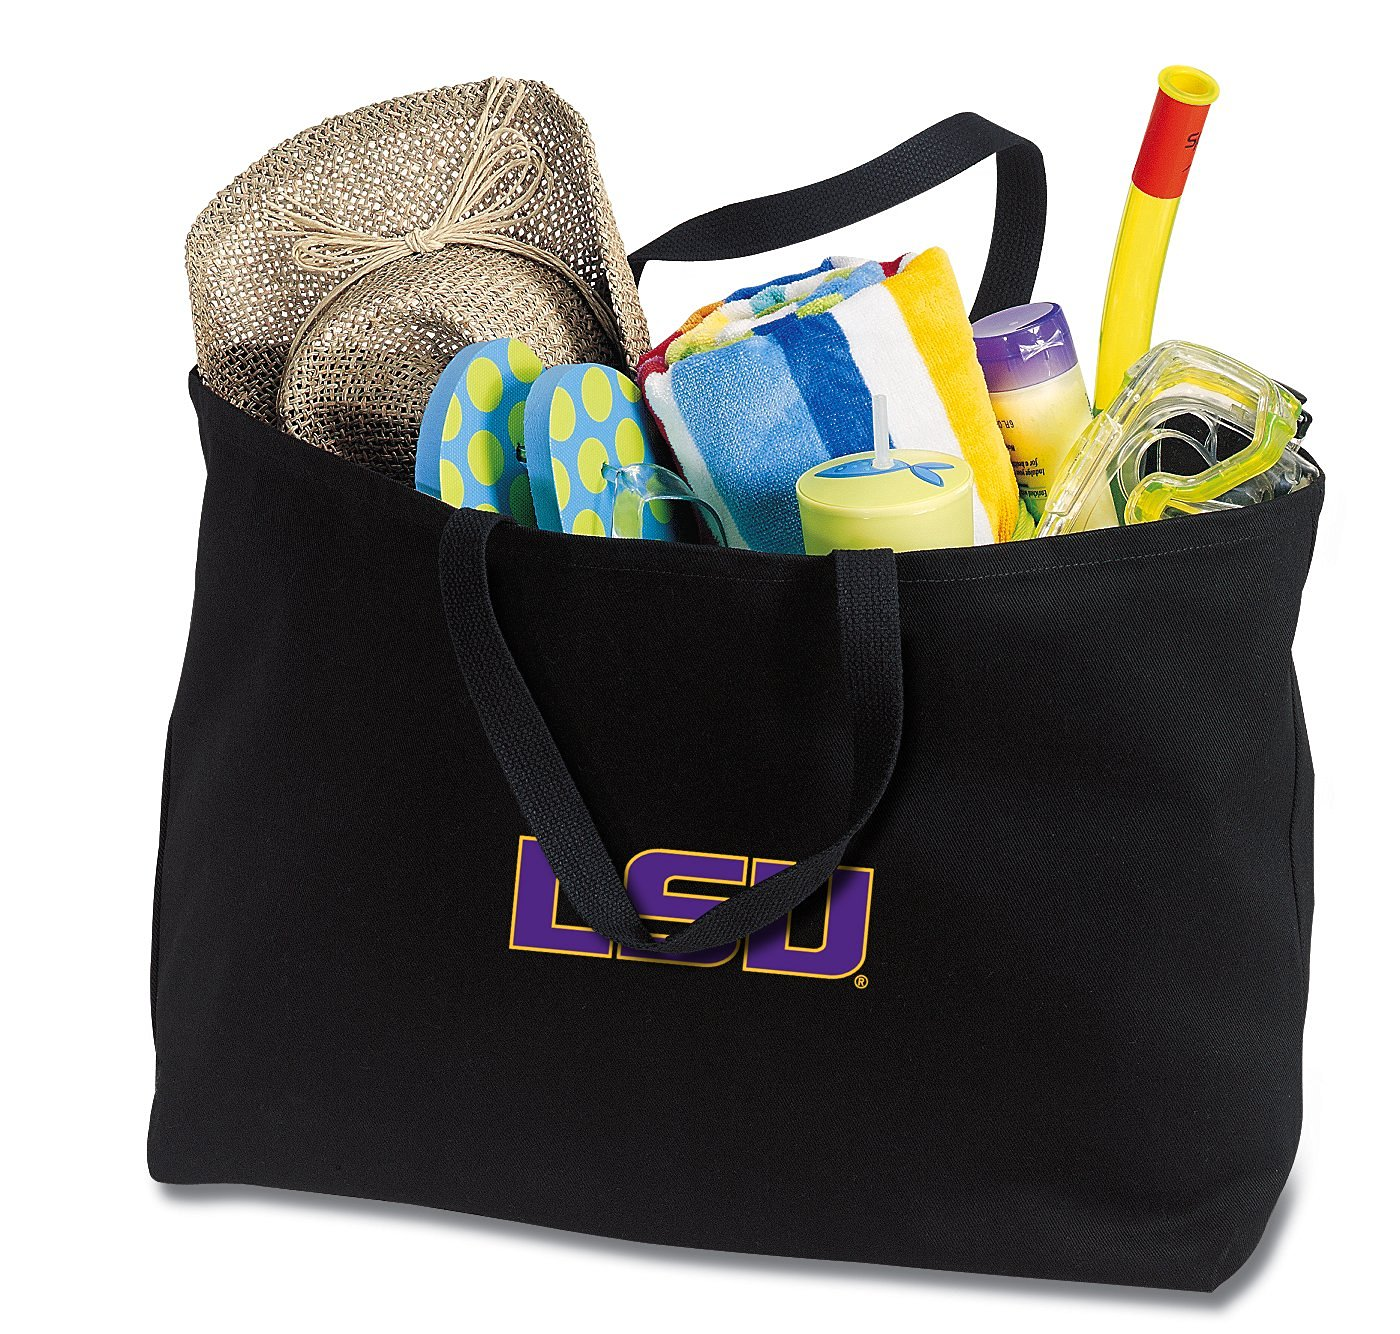 JUMBO LSU Tote Bag or Large Canvas LSU Tigers Shopping Bag